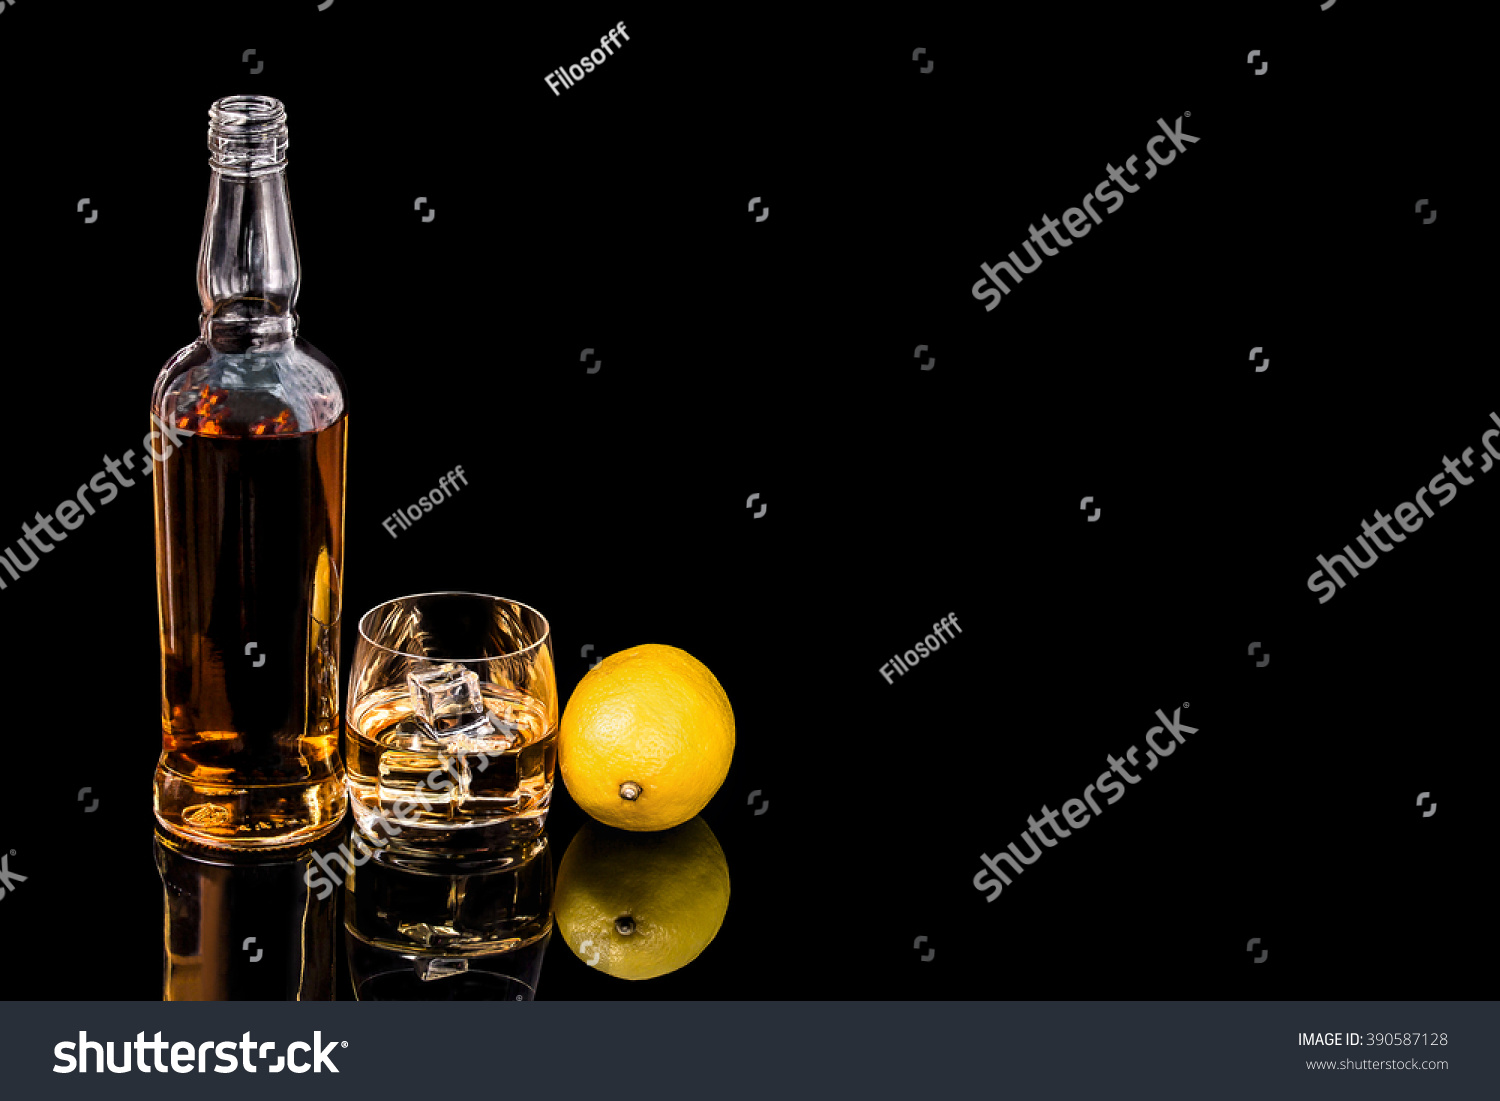 Bottle and a glass of whiskey with ice and  lemon on a black background #390587128